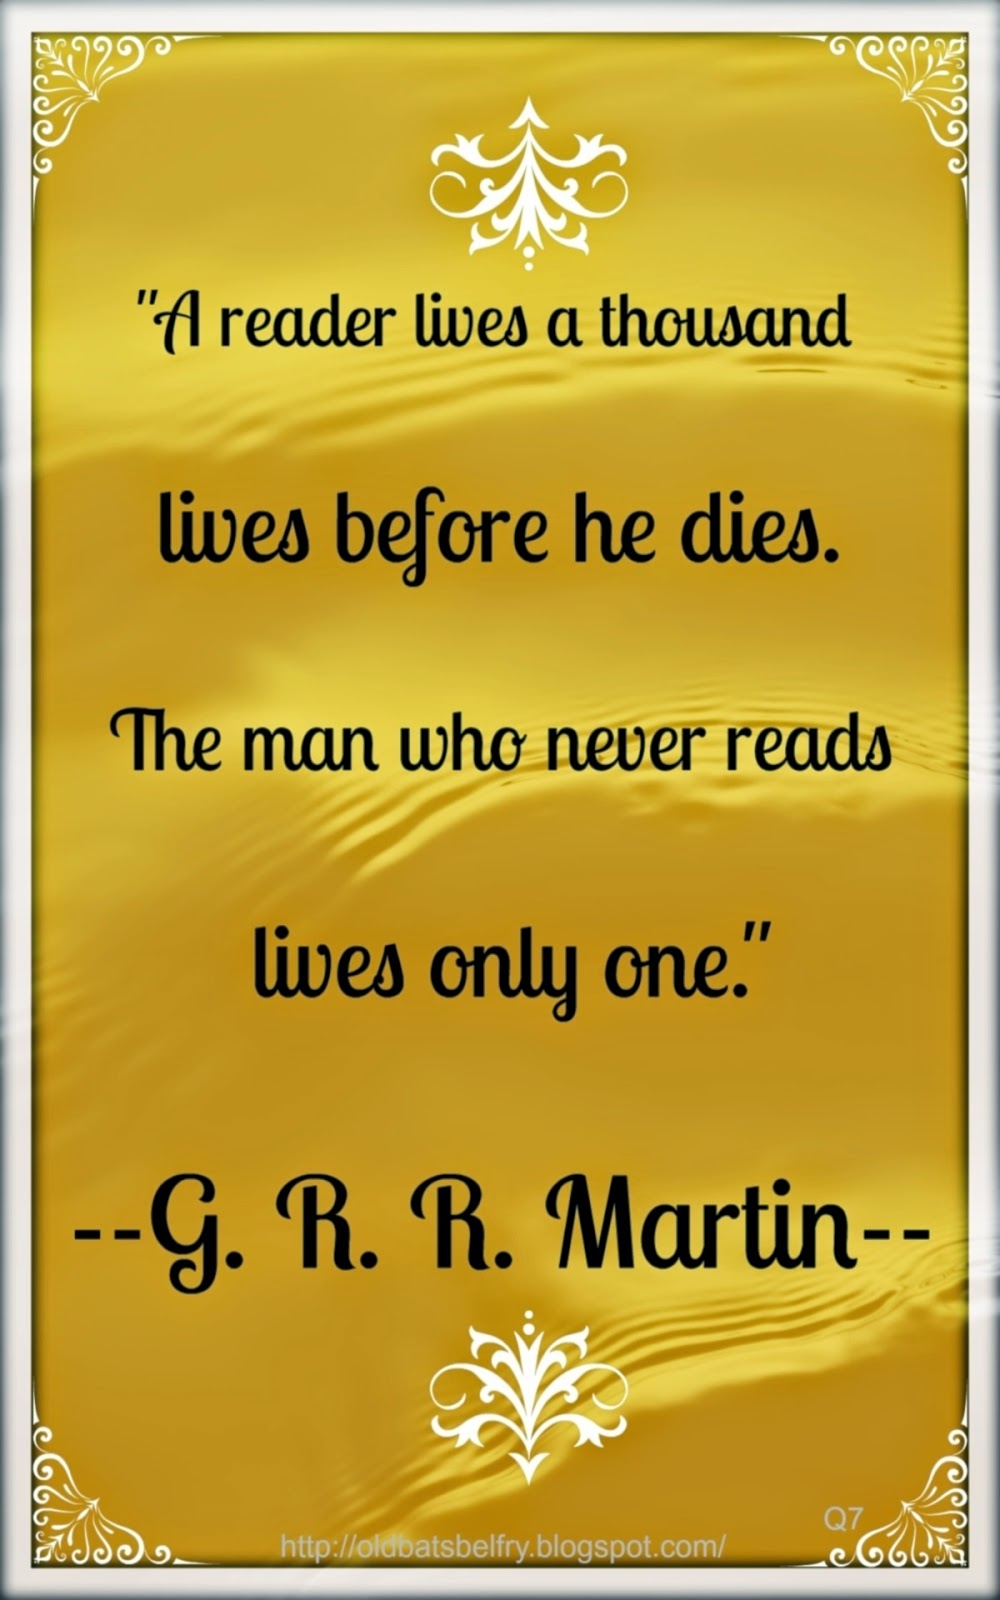 Quote by George R.R. Martin ~ Design by Mulluane